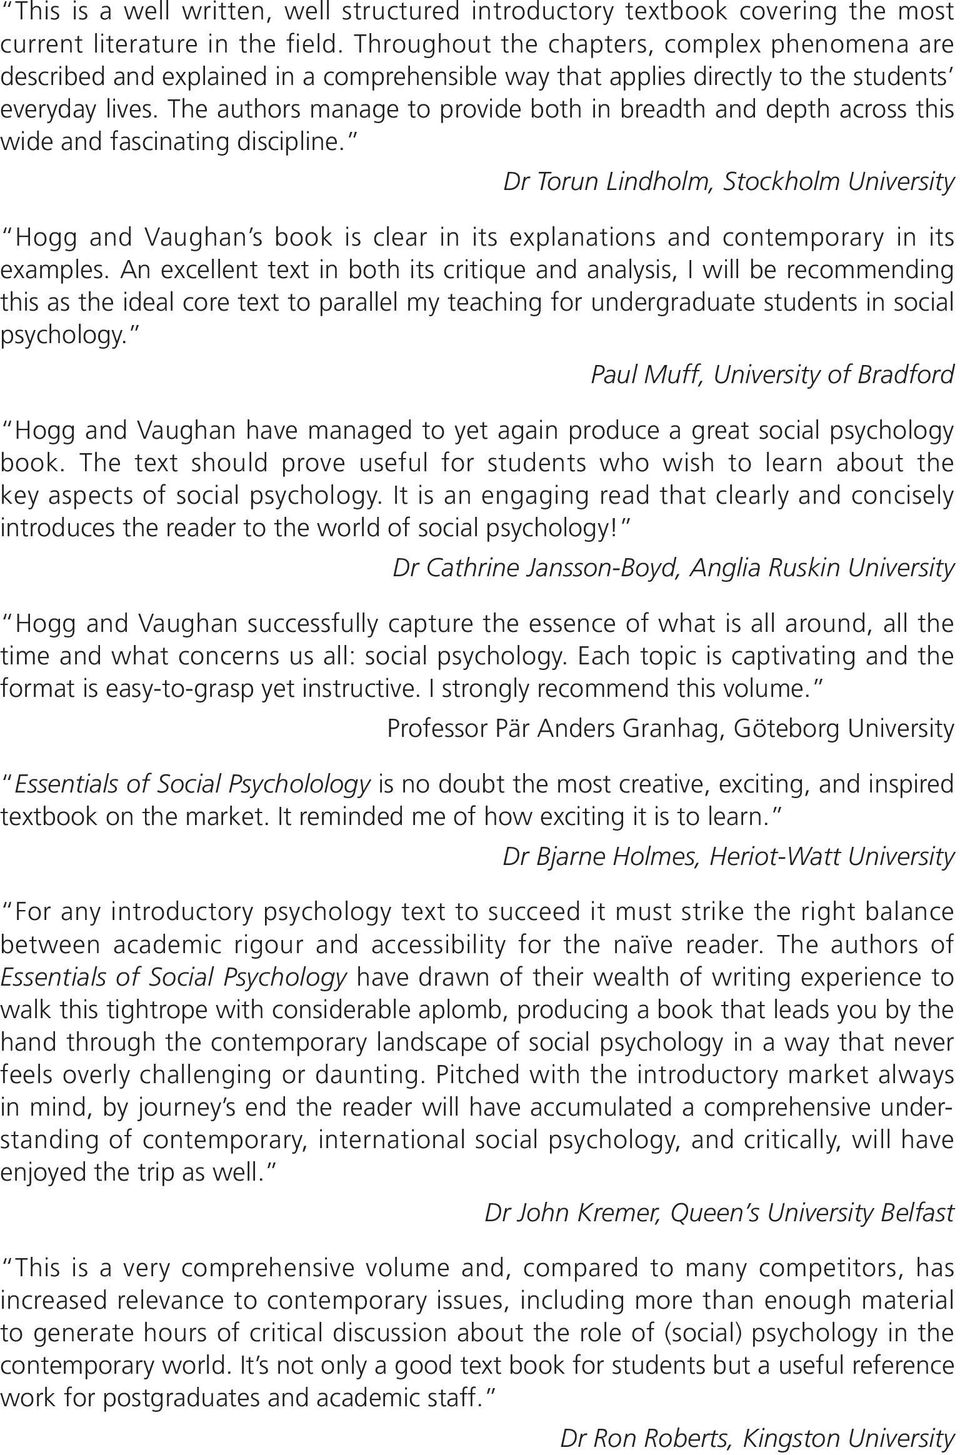 Essentials of social psychology michael a hogg graham m vaughan the authors manage to provide both in breadth and depth across this wide and fascinating discipline fandeluxe Gallery